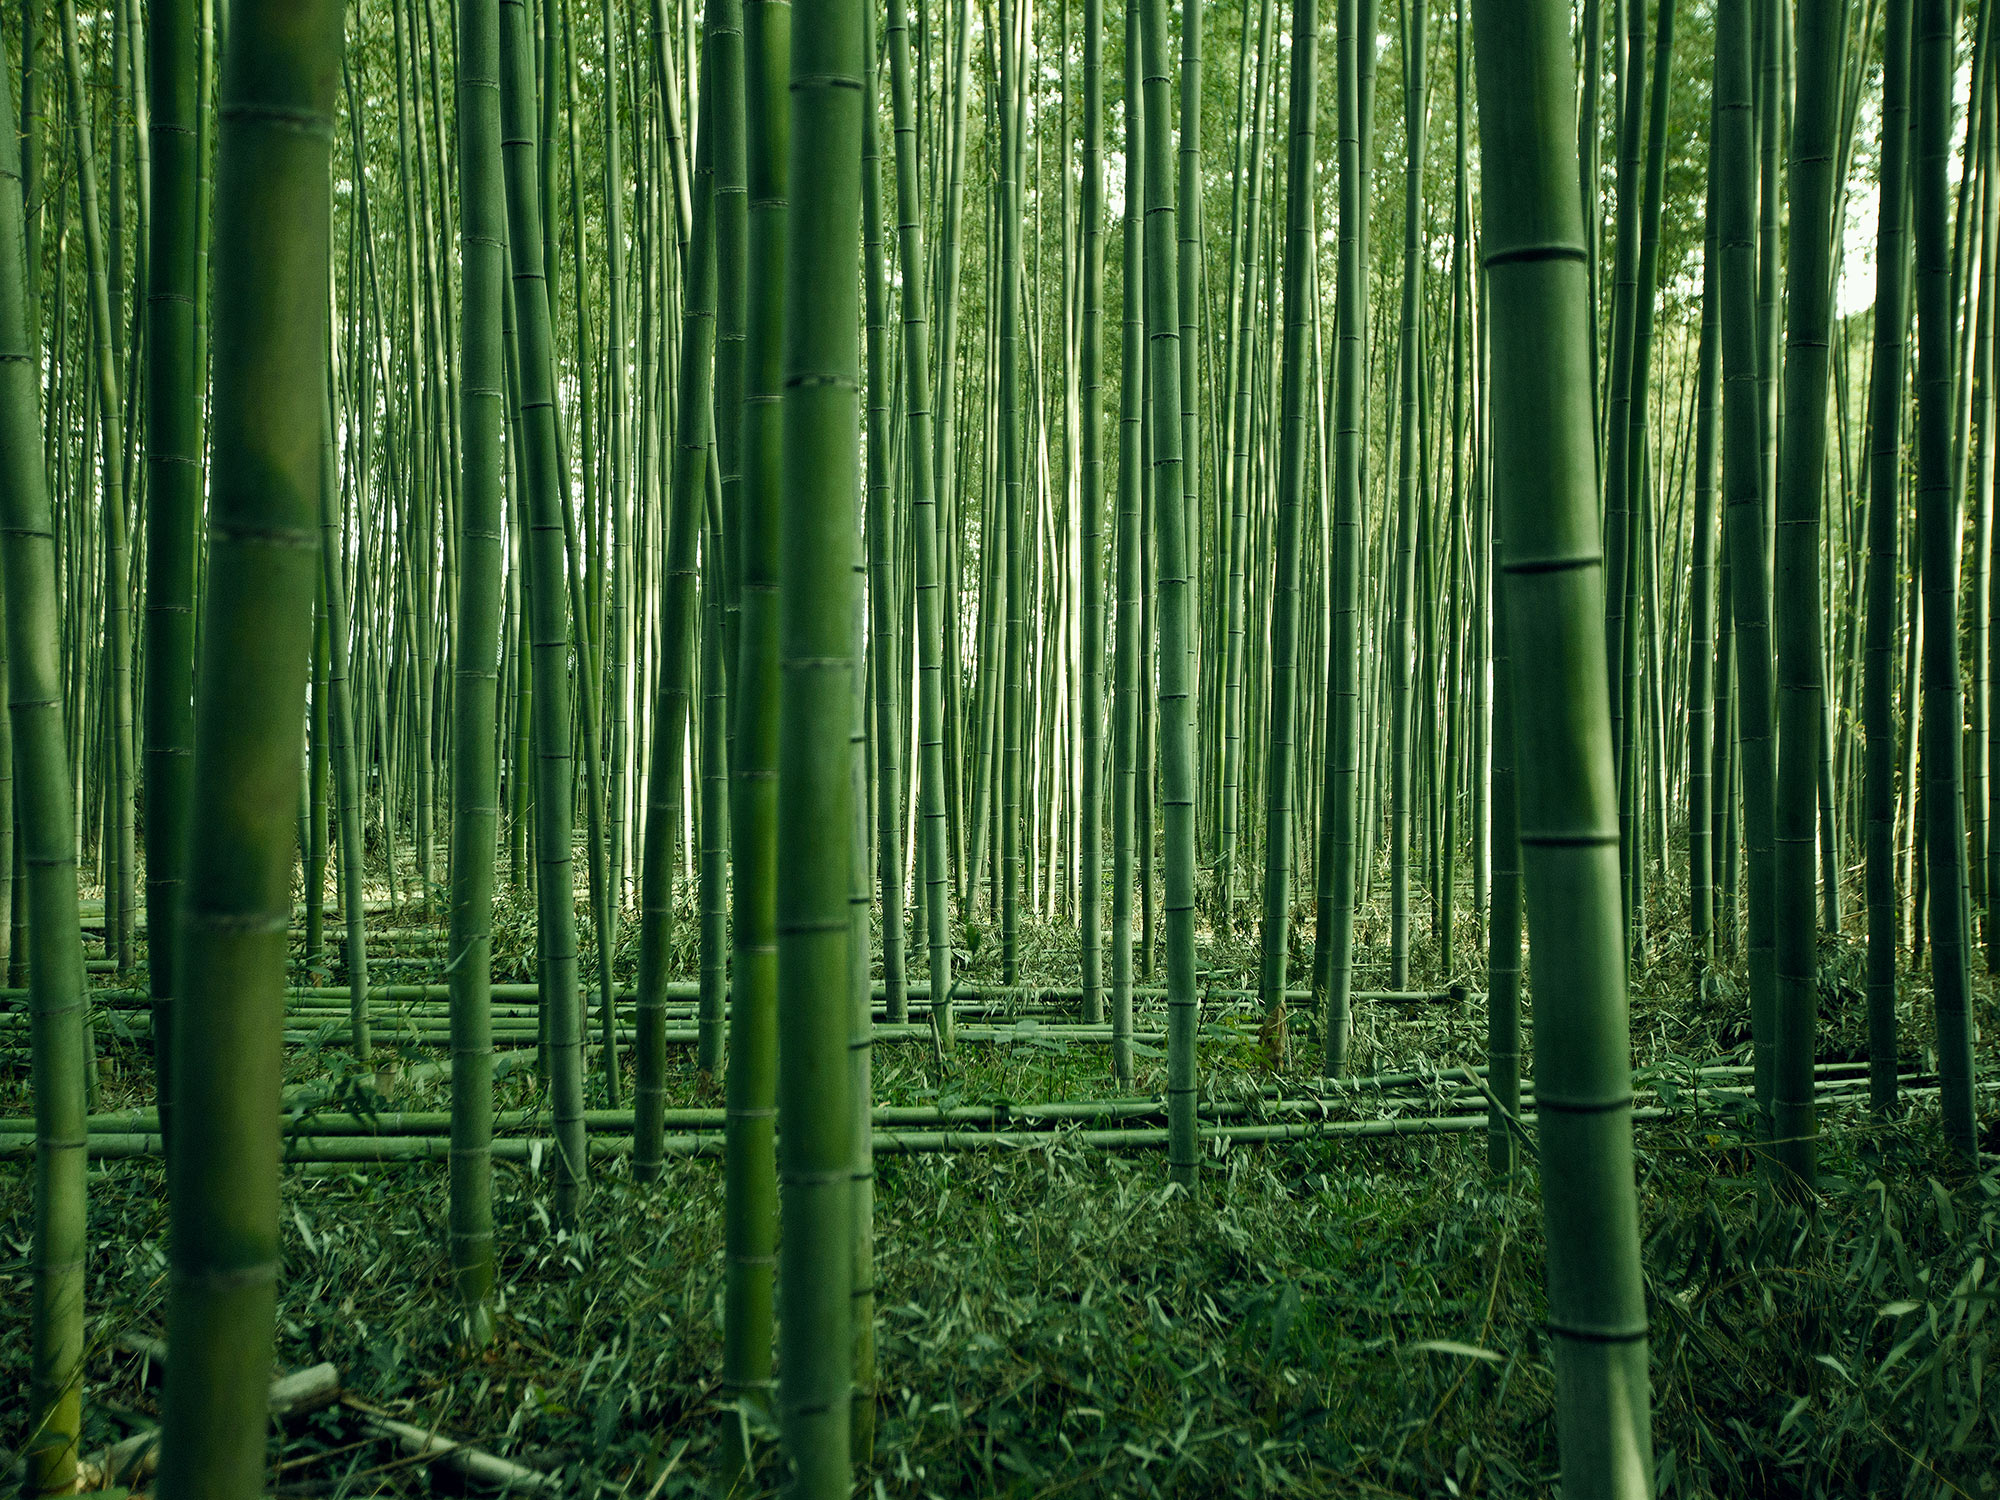 Green bamboo forest in Kyoto, Japan, photographed by Houston editorial and commercial photographer, Todd Spoth.